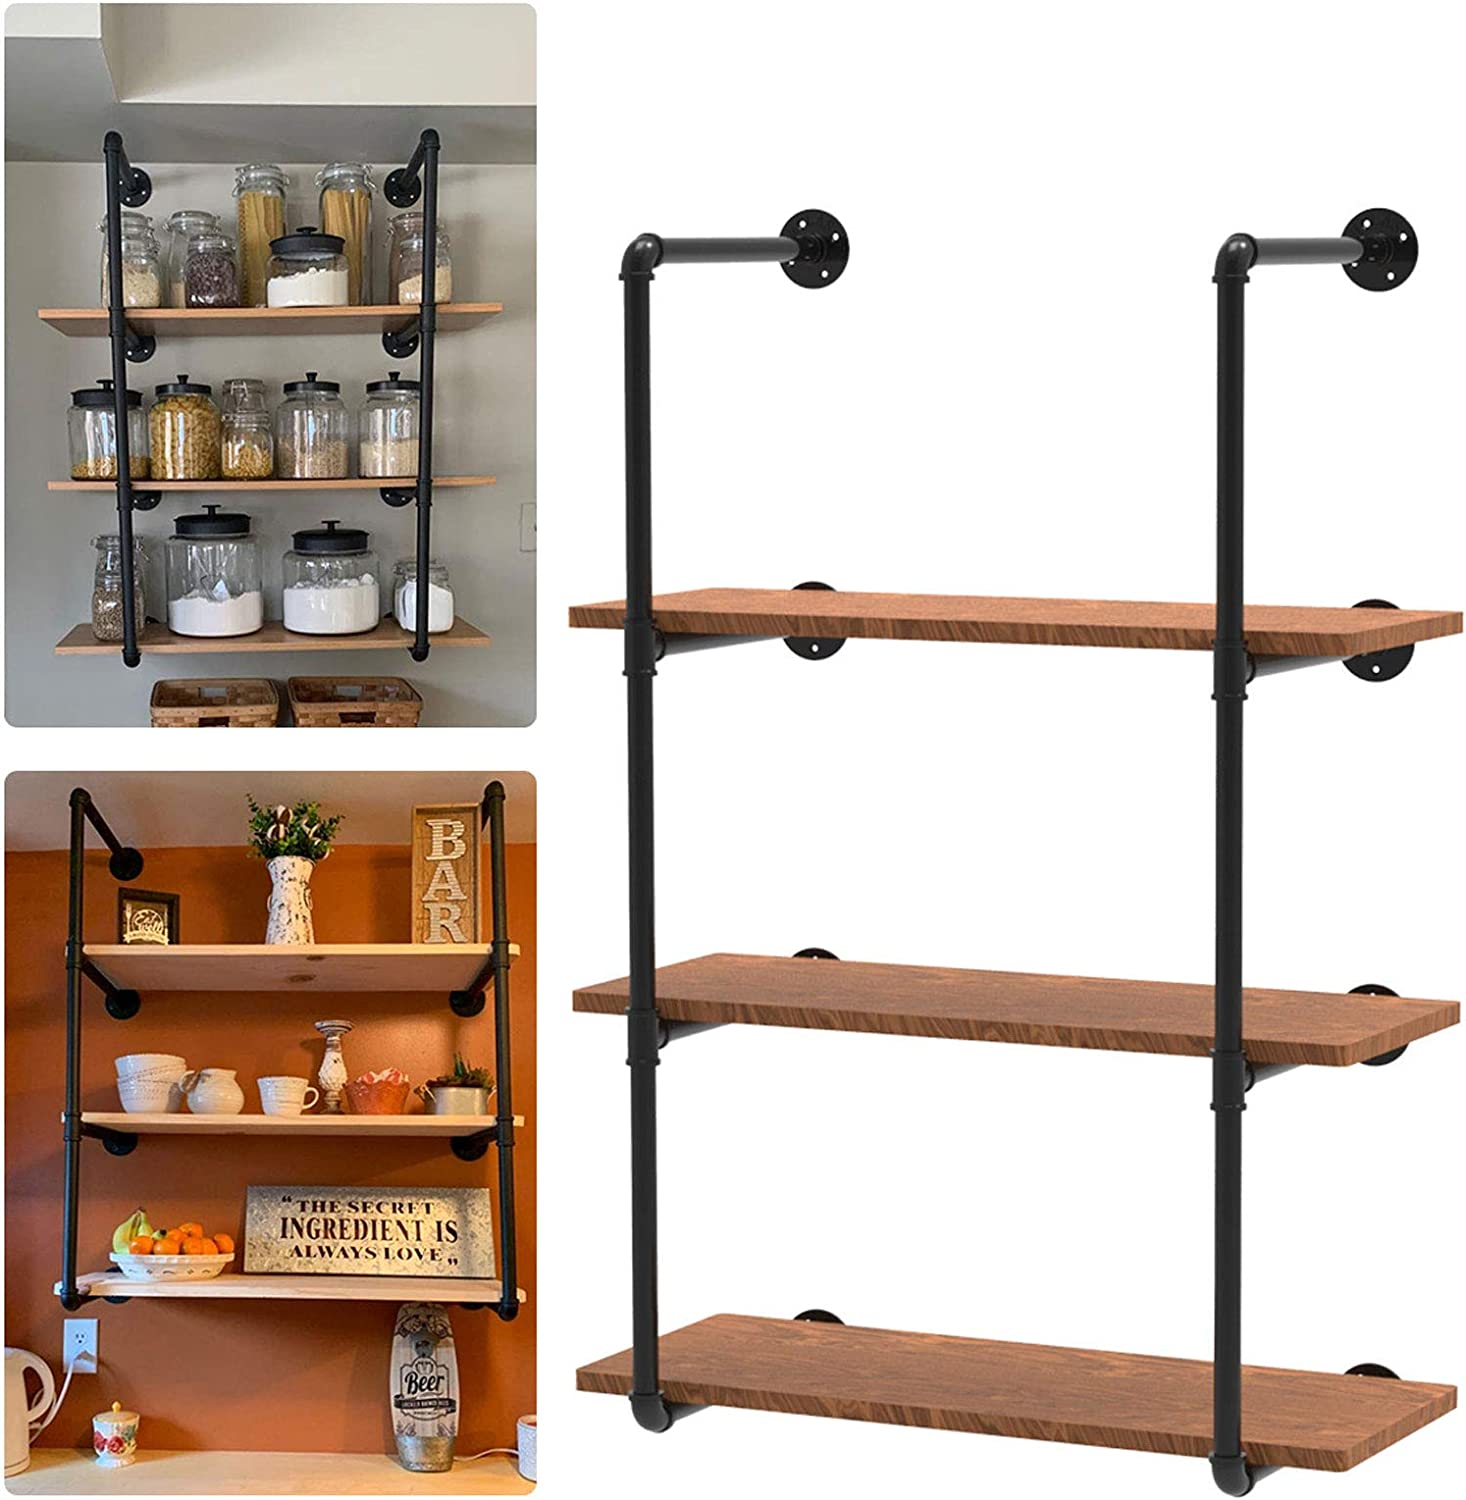 Industrial Wall Mount Iron Pipe Shelf Brackets Vintage Retro Black Pipe Shelving for DIY Shelves Open Bookshelf Storage Office Room Kitchen - 4 Tier, Plank Board No Included